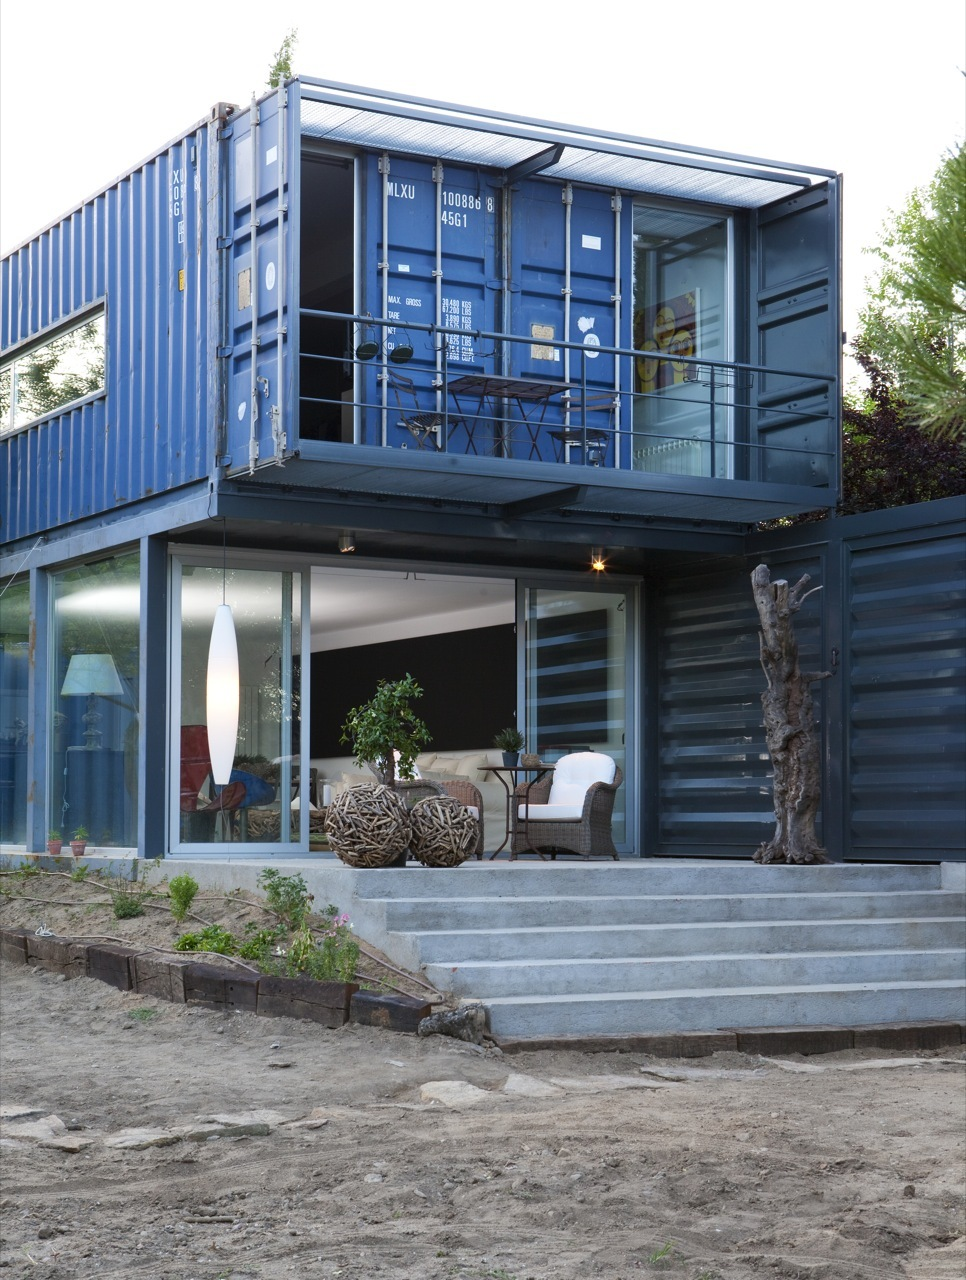 Seecontainer Haus Shipping Container Homes & Buildings: Two Story Container